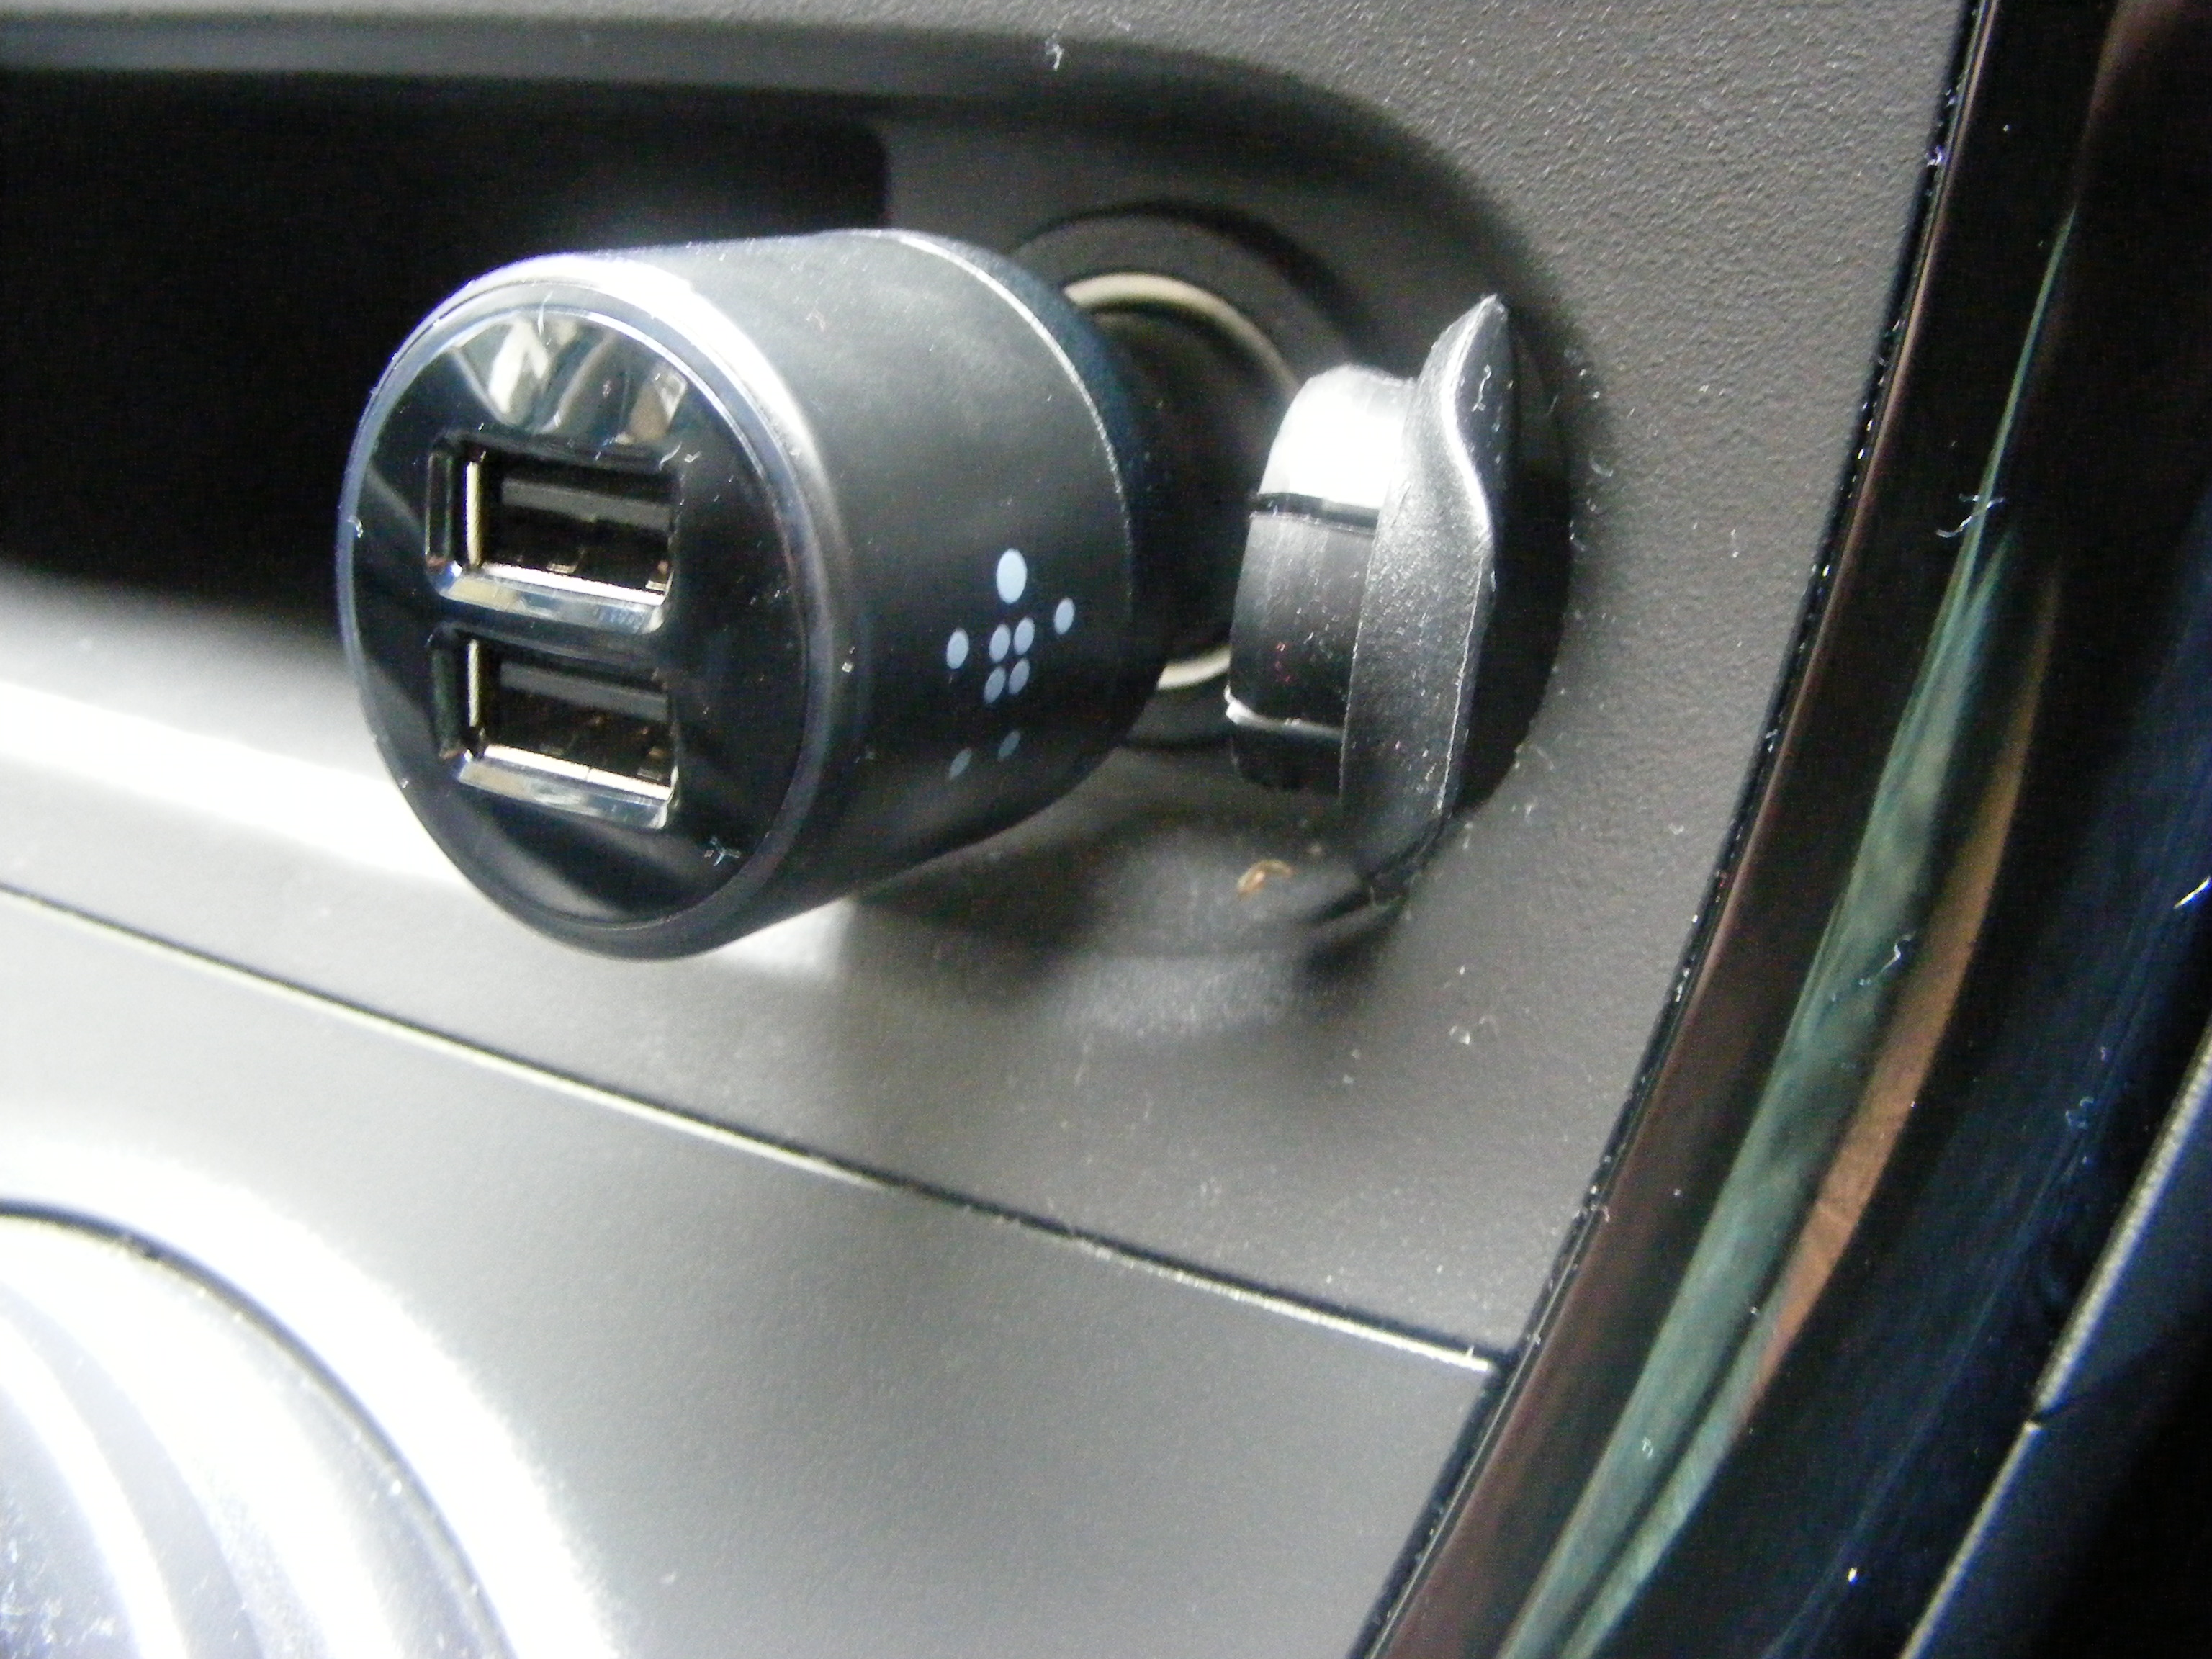 Car Key Battery >> Belkin 20 watt Dual USB Car Charger review - Coolsmartphone